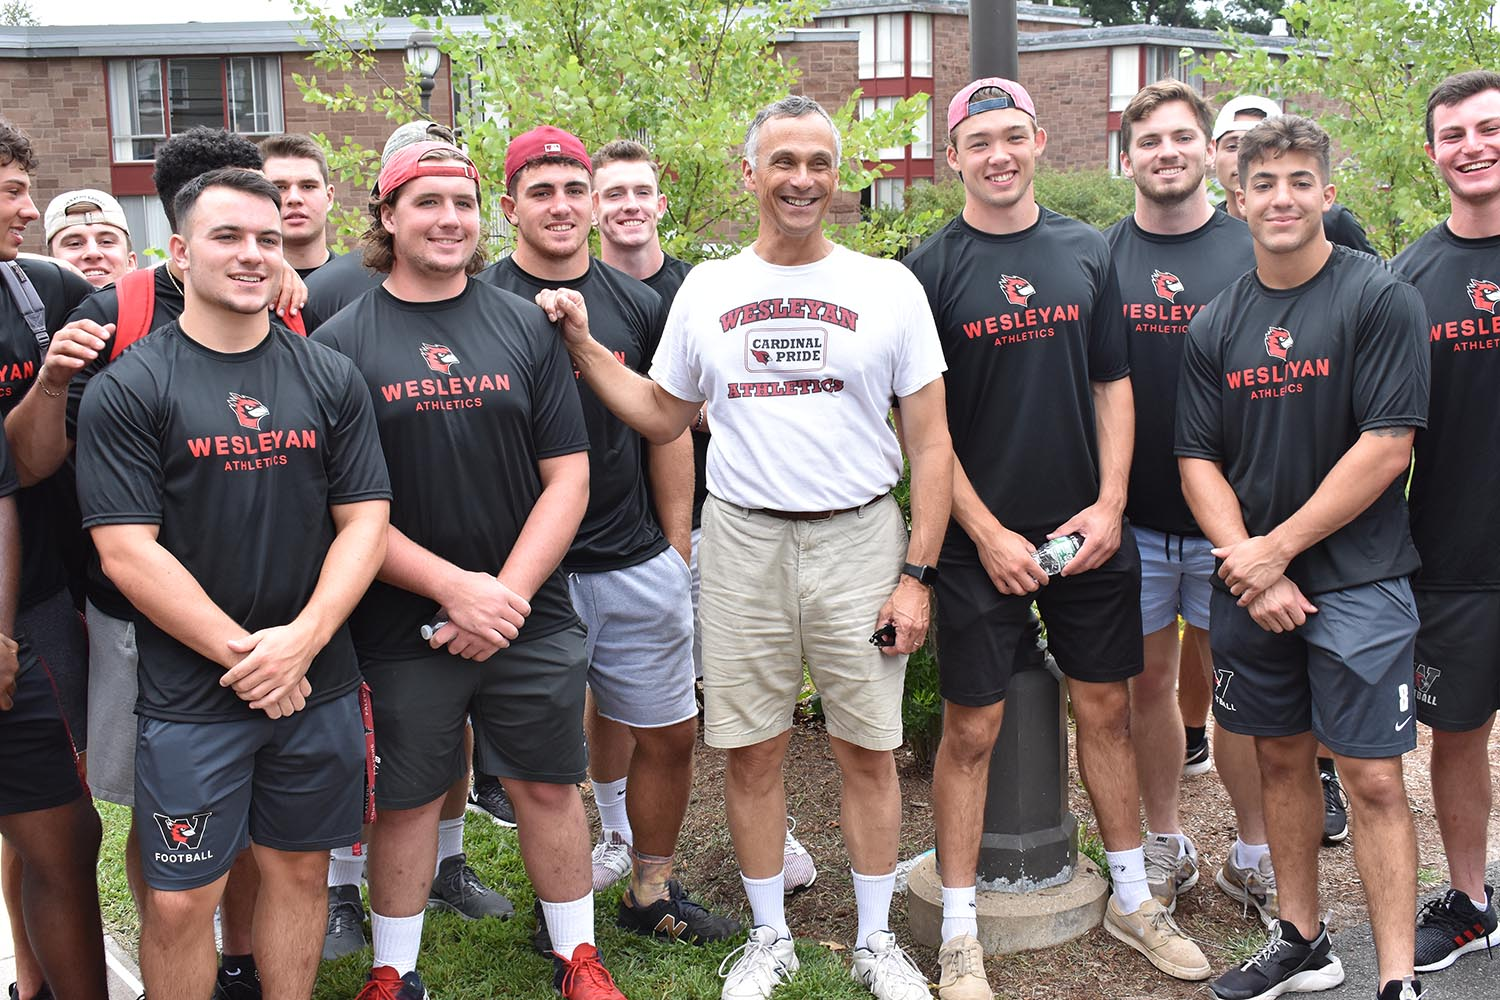 Wesleyan President Michael Roth greeted members of the Class of 2023 and their families on Arrival Day, Aug. 28. President Roth and several student-athletes helped the new students move their belongings into their new residence halls.